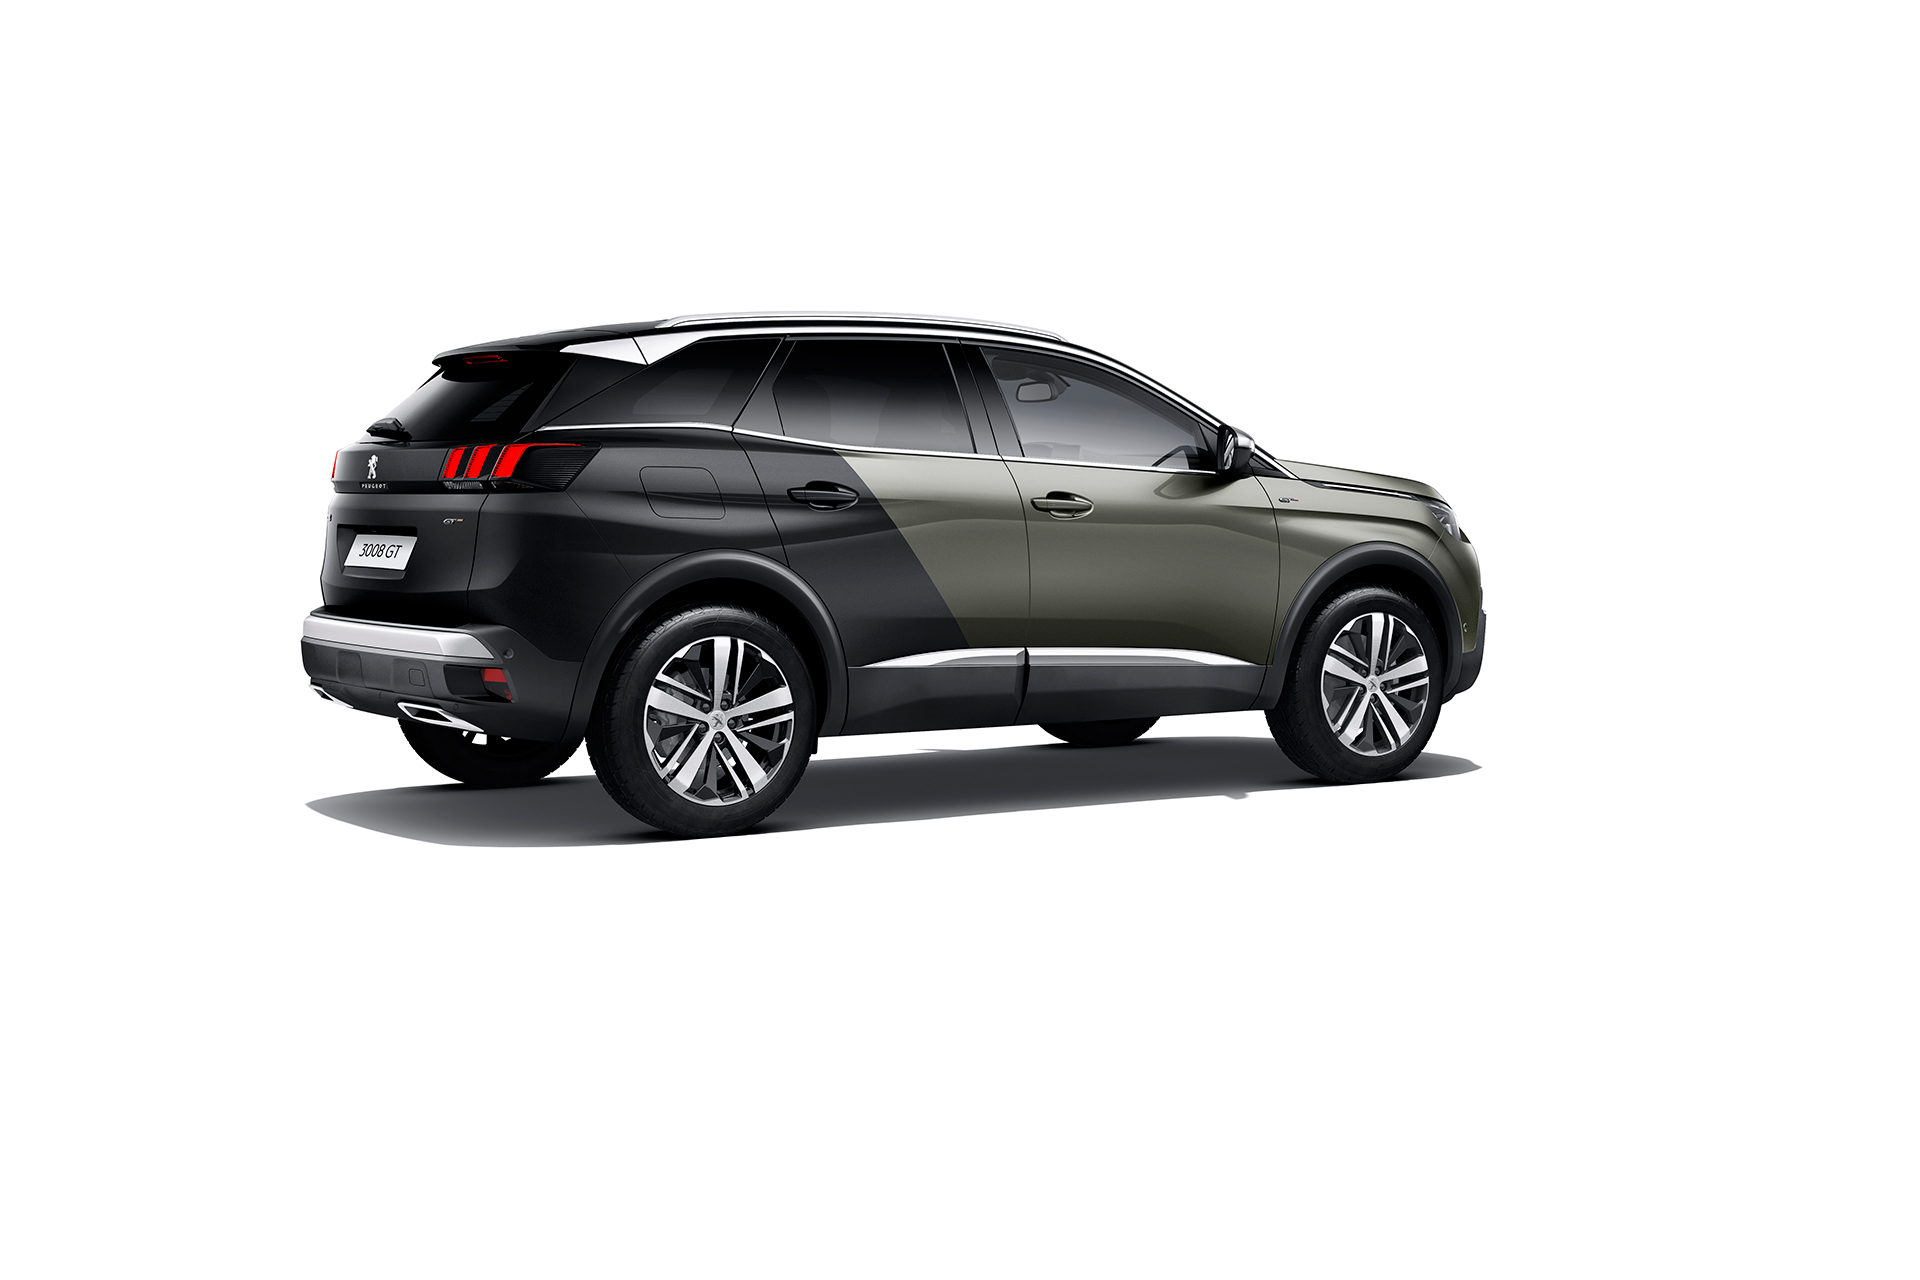 Peugeot 3008 - GT - 2016 - profil arriere / rear side-face